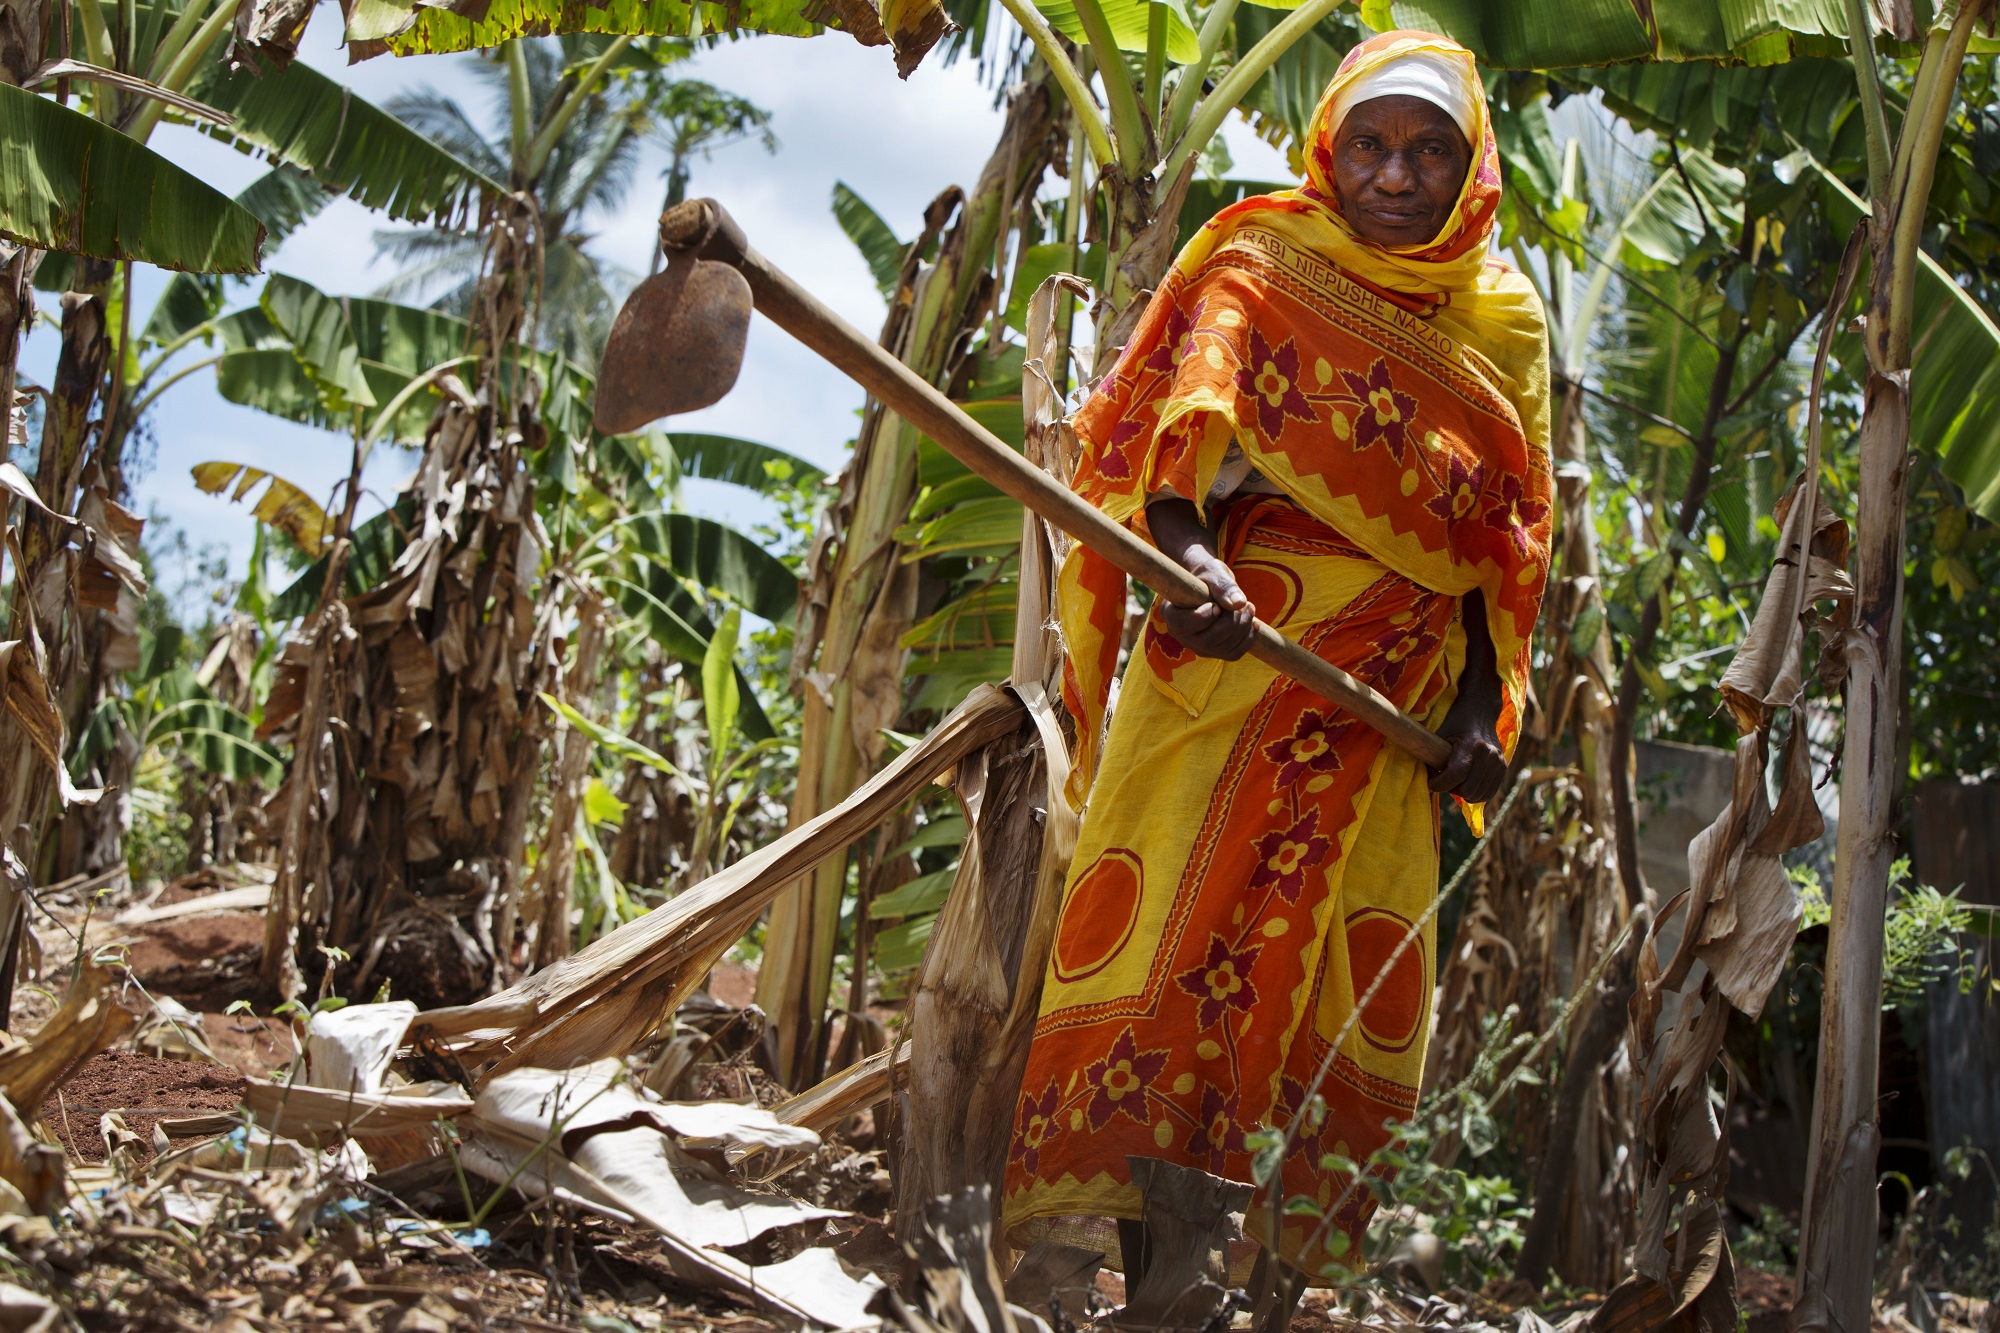 Asherjuma started a farming collective with money from her universal pension in Zanzibar (c) Kate Holt/Age International